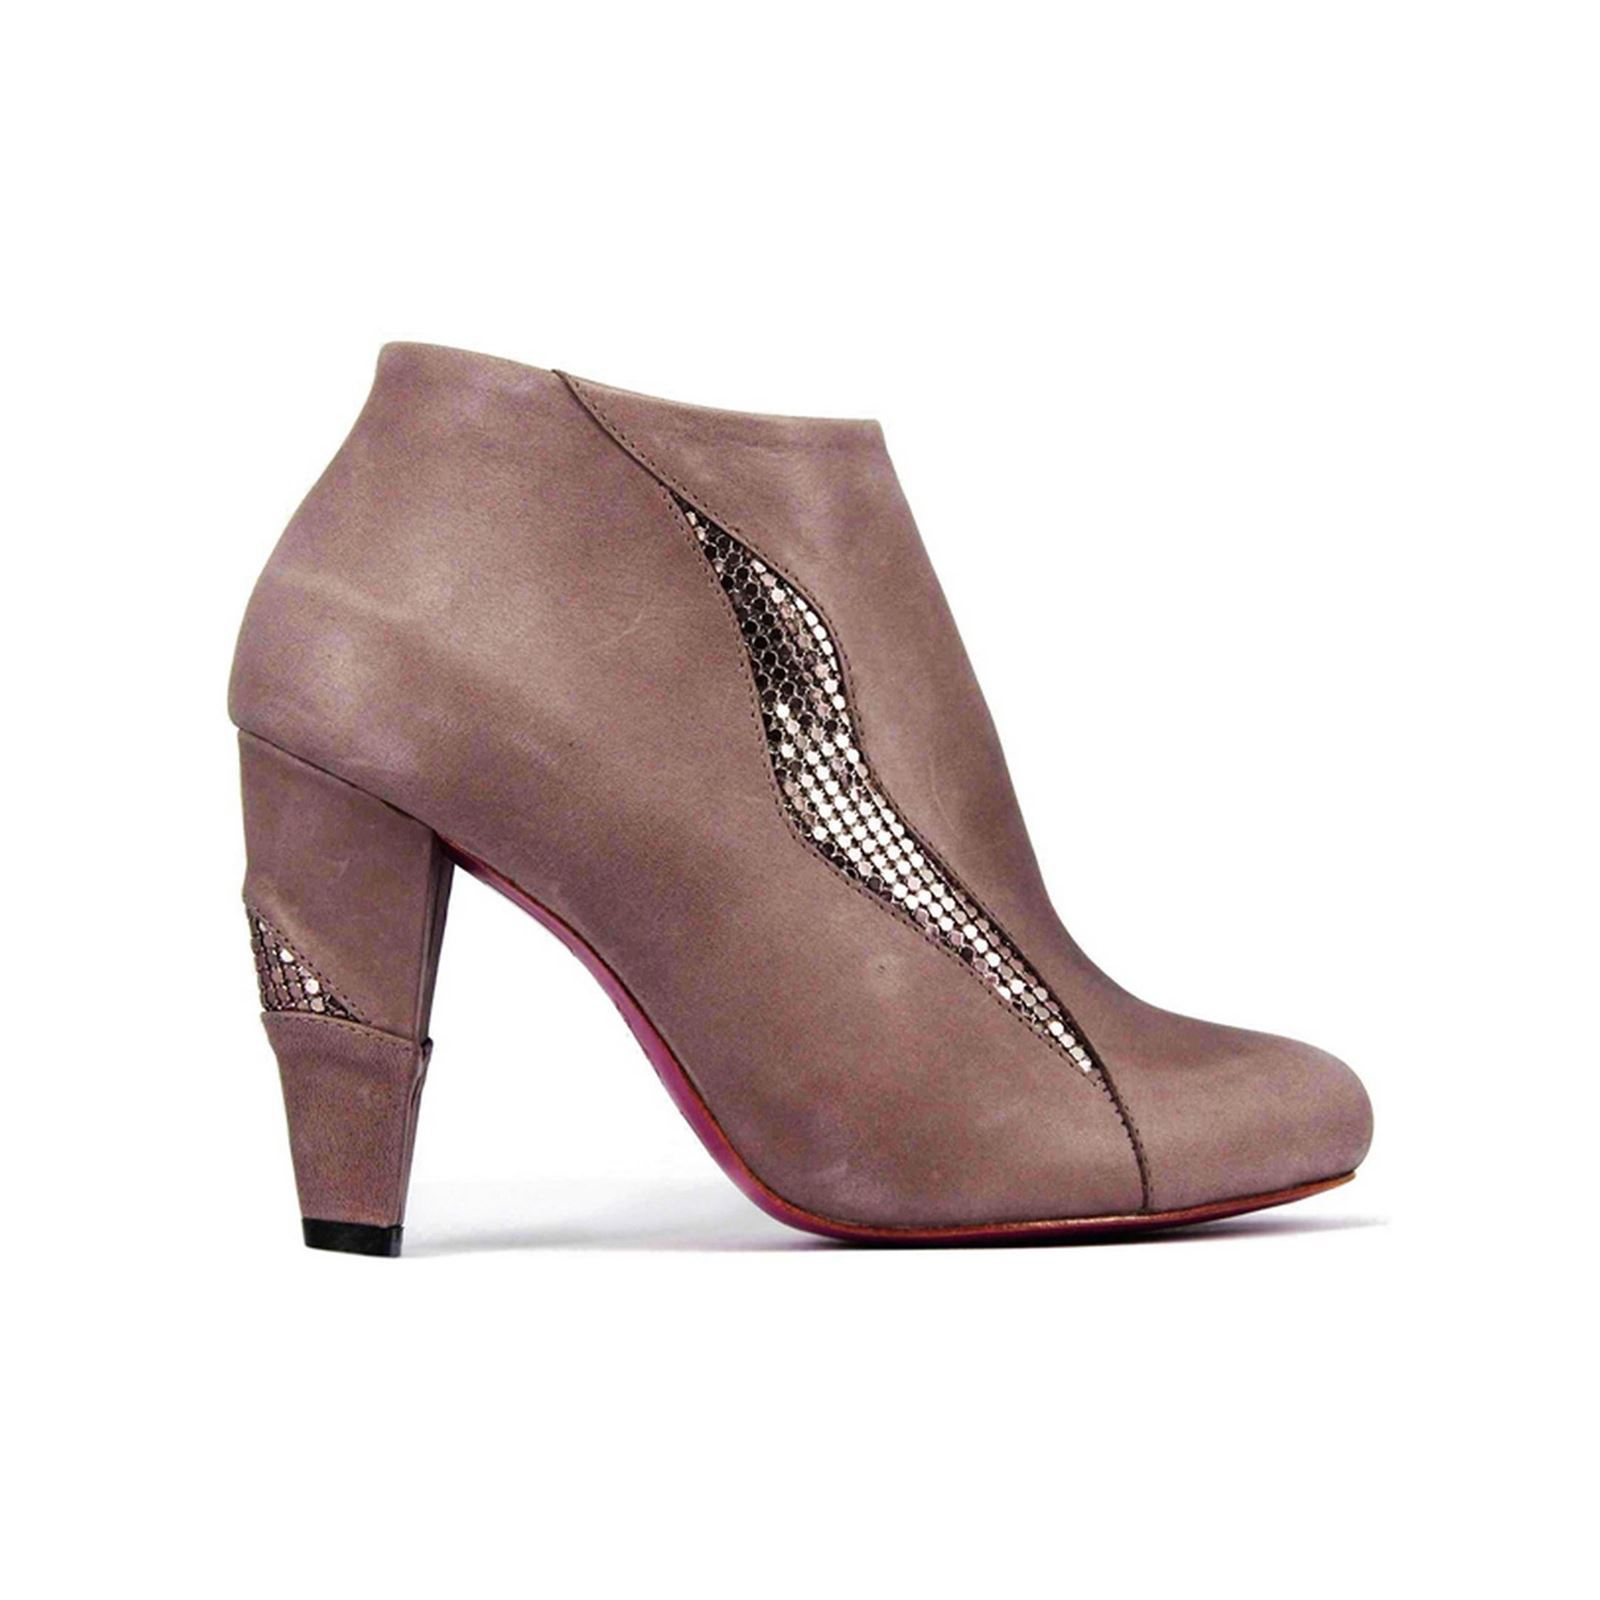 Pring Paris Fayana - Bottines en cuir - taupe